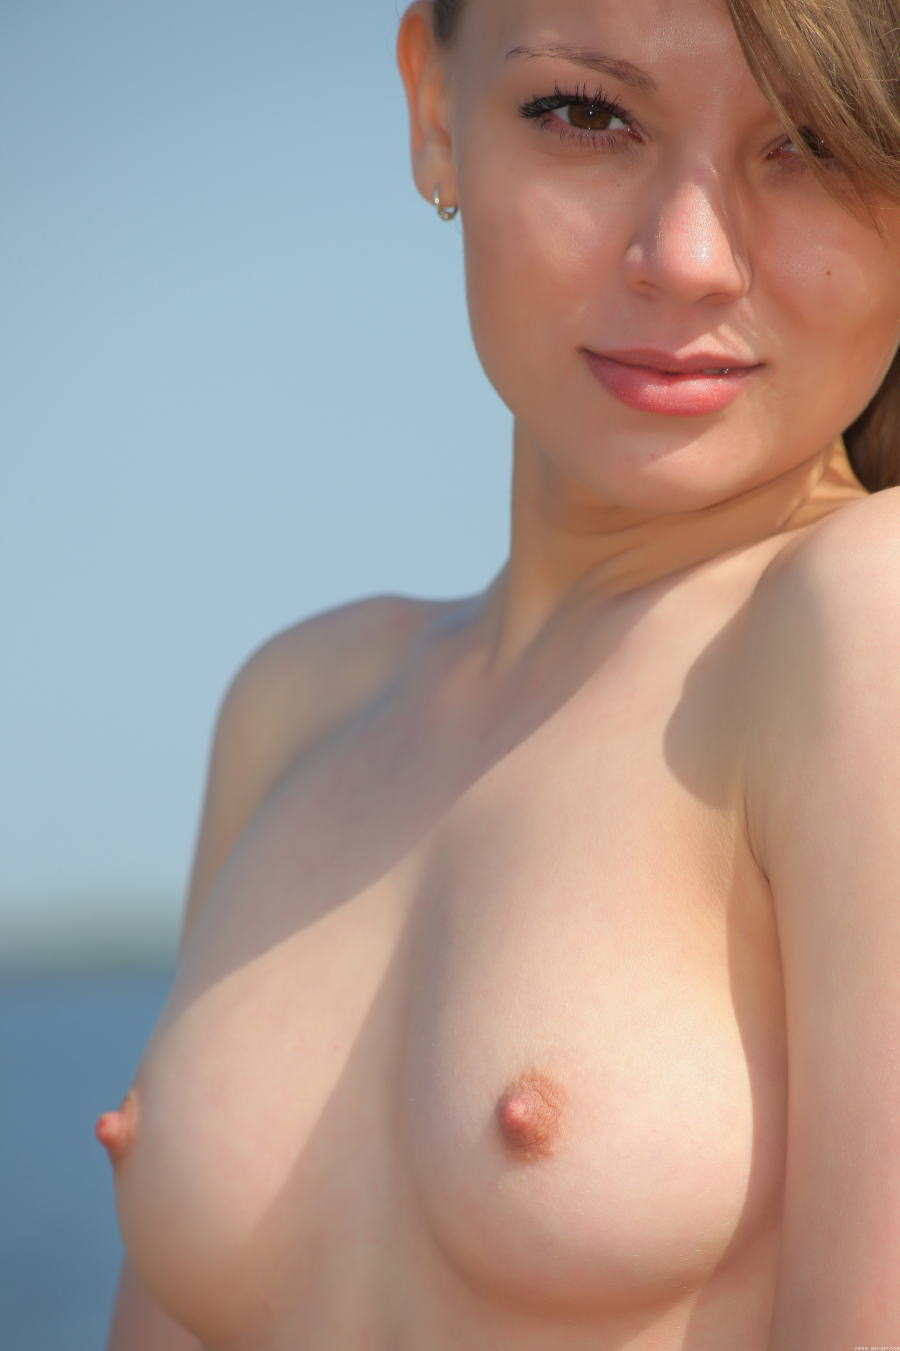 Can ask Image hd sexci boobs tits anatomy simply